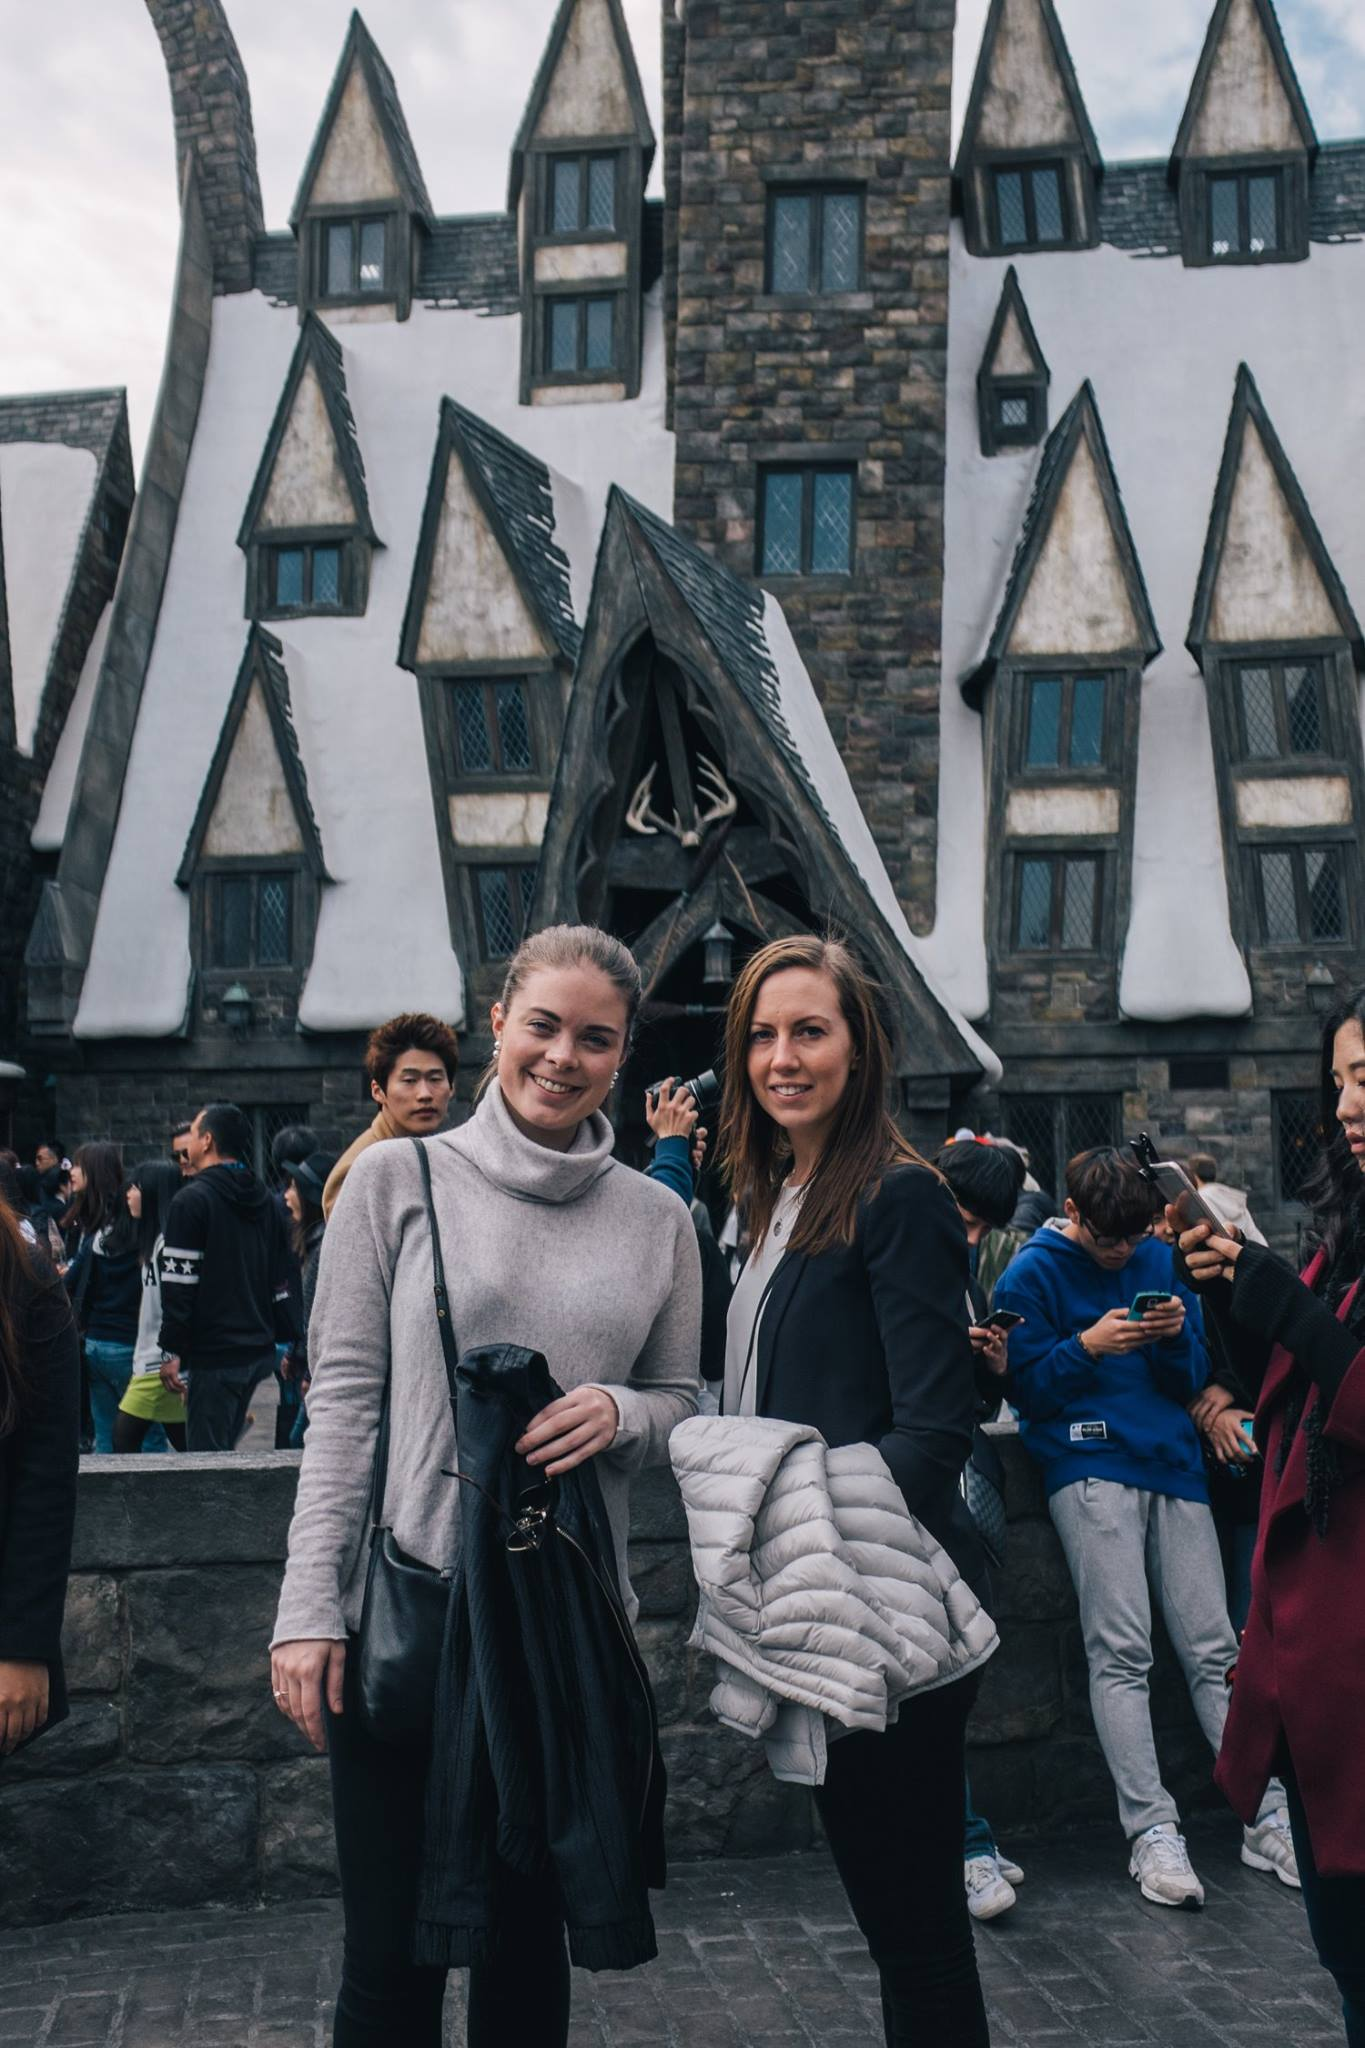 wizarding world of harry potter_maren-hald-bjorgum-13